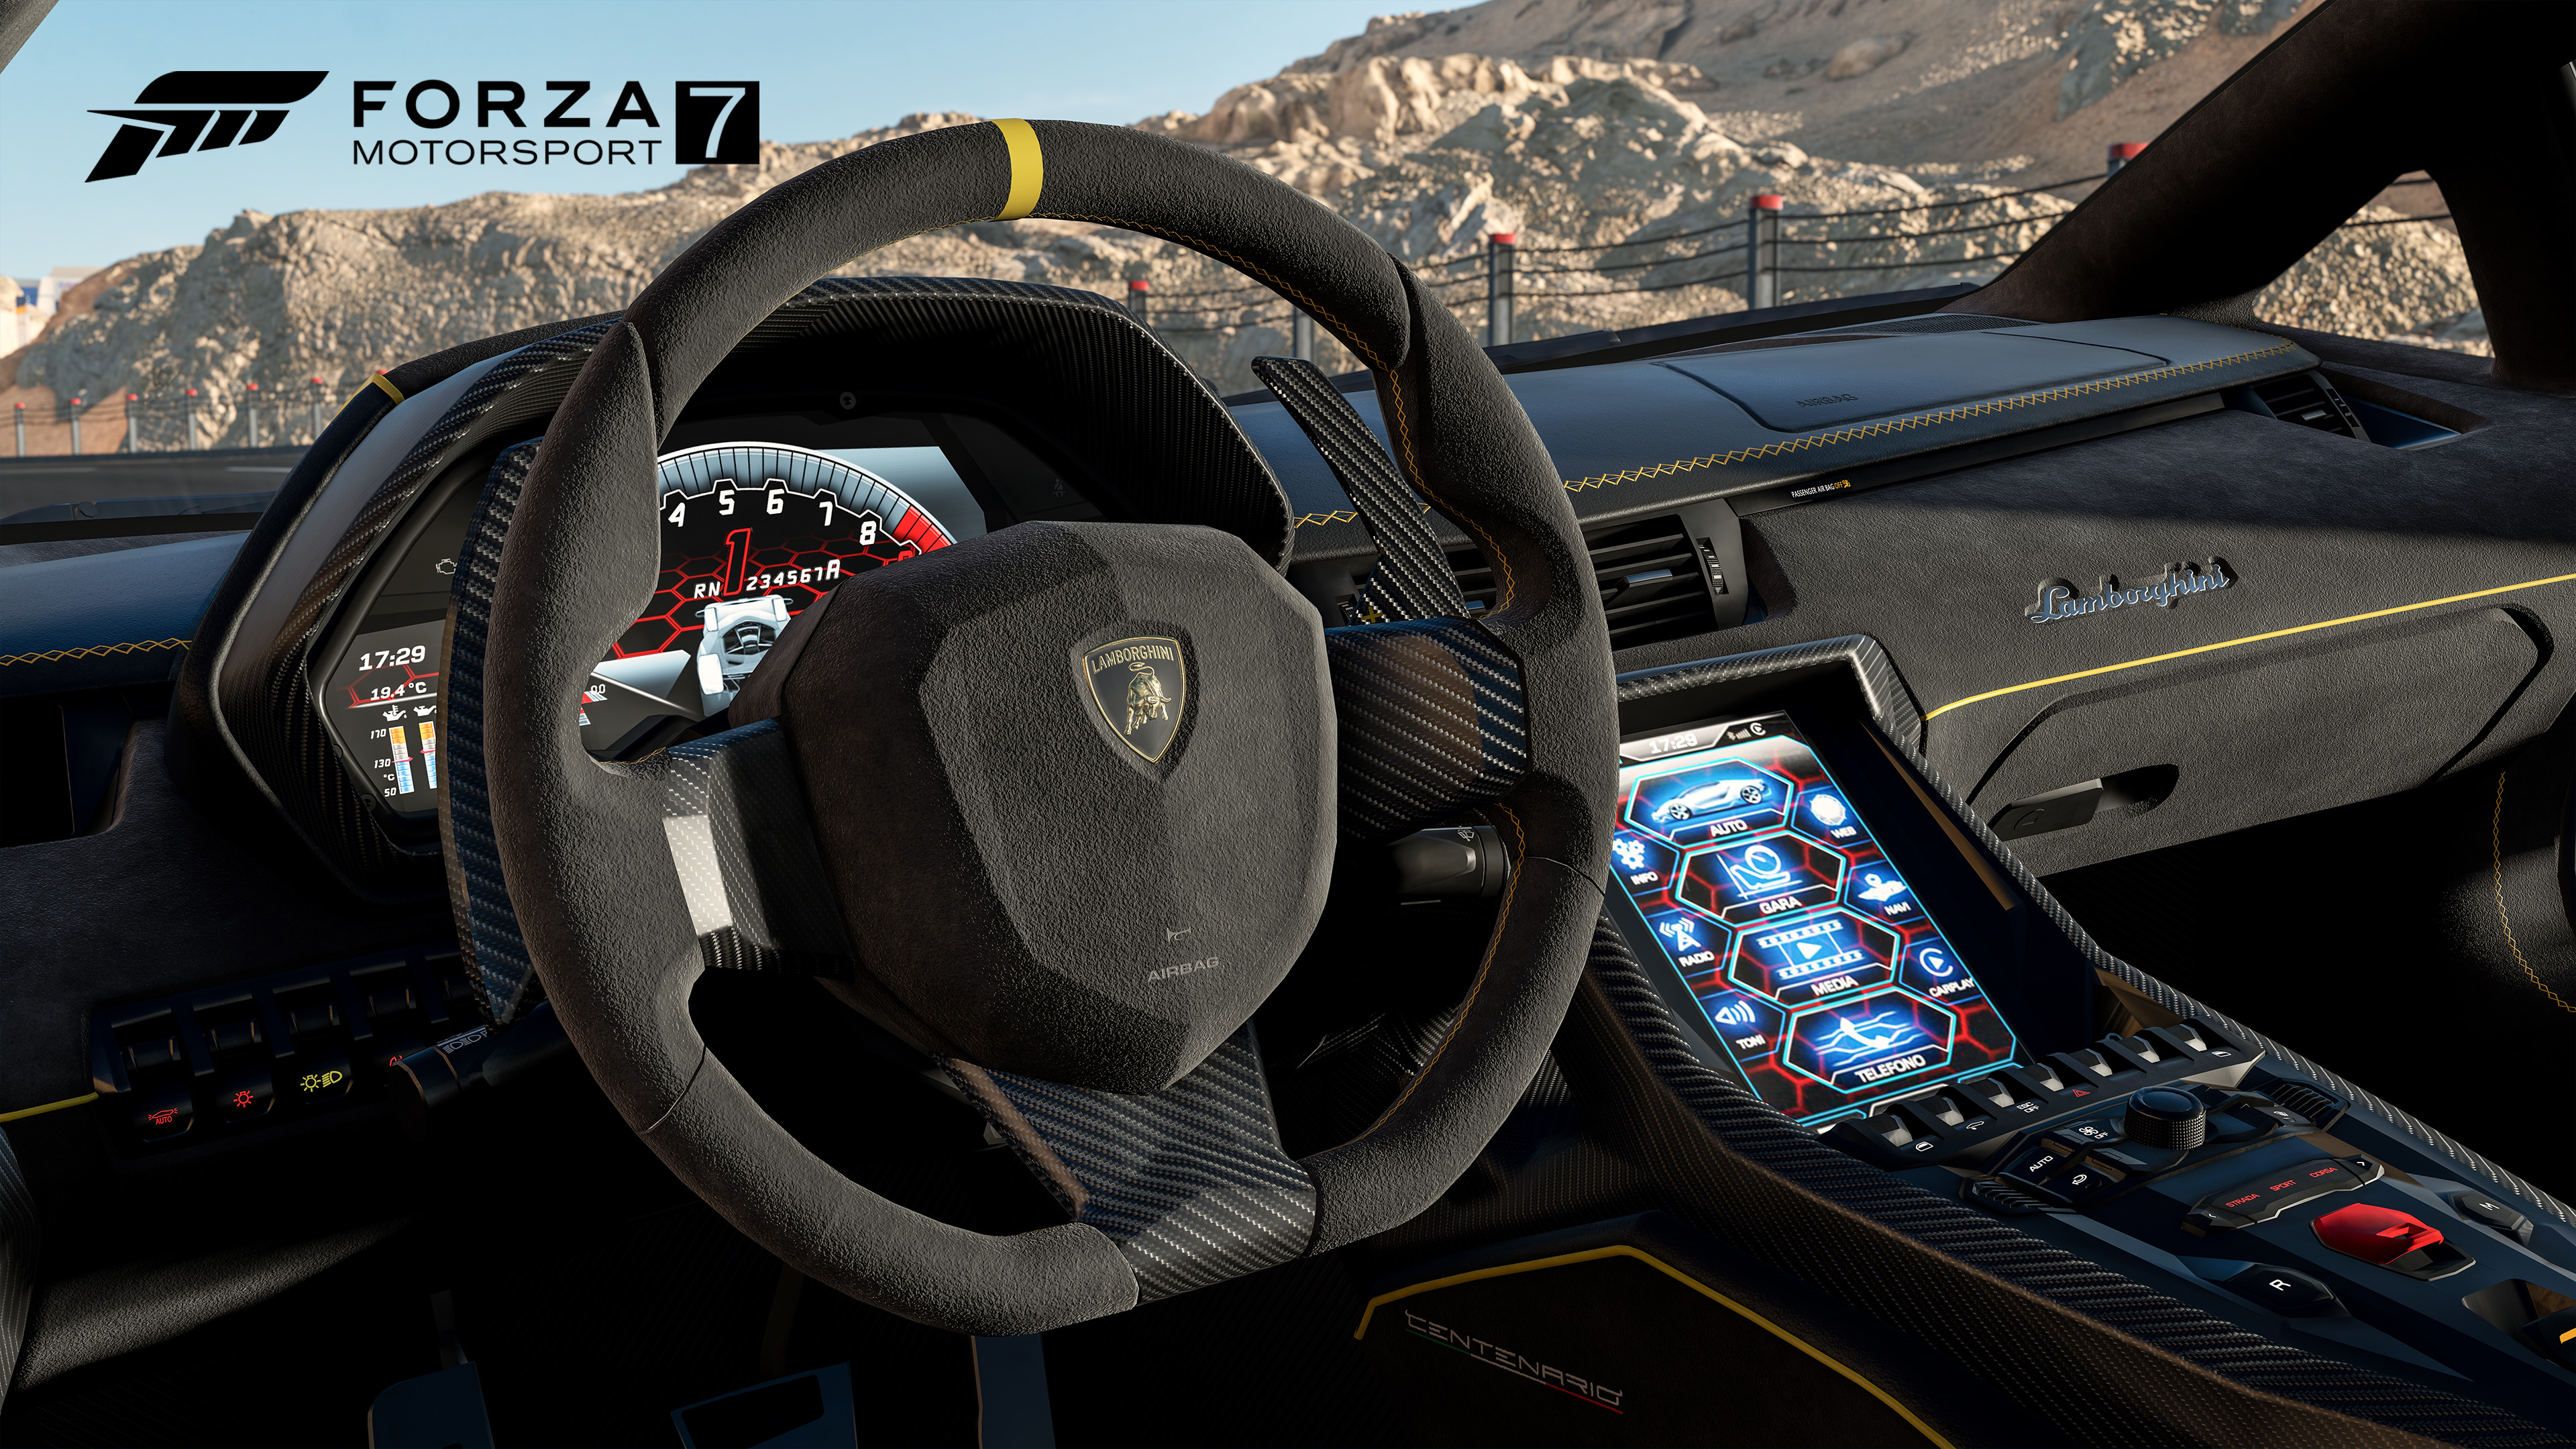 On Their Website Showing The Interior Of Lamborghini Centenario Which Featured As Cover Car For Last Years Blockbuster Hit Forza Horizon 3